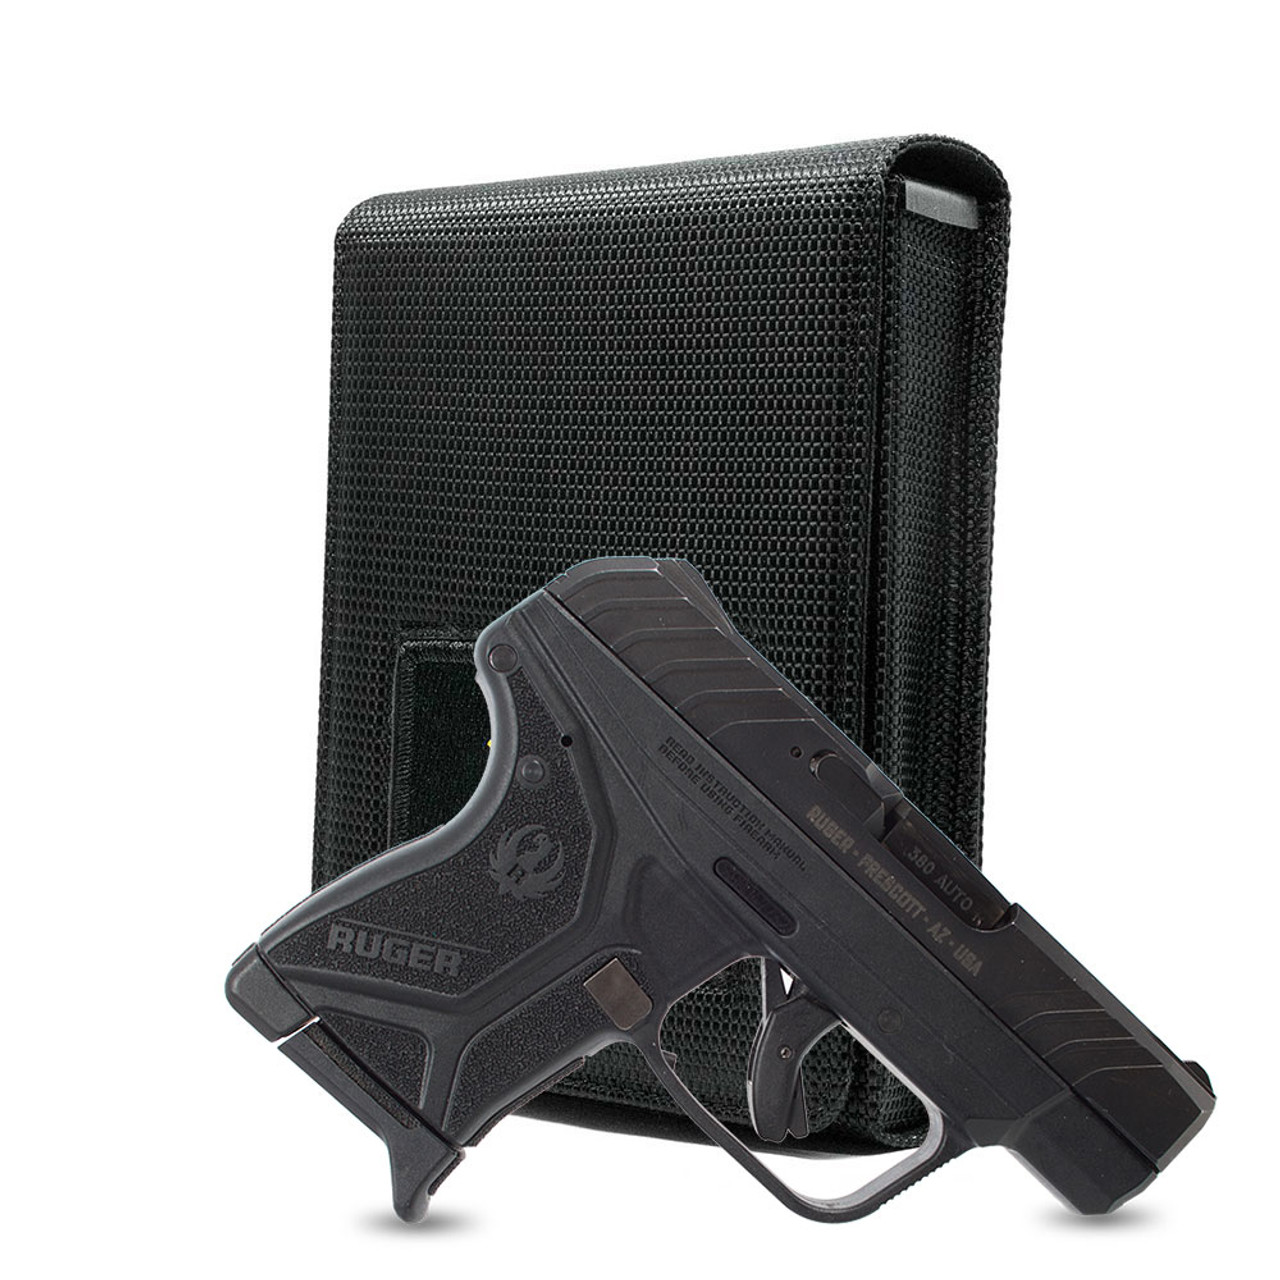 Ruger LCP II Army Tactical Patch Holster